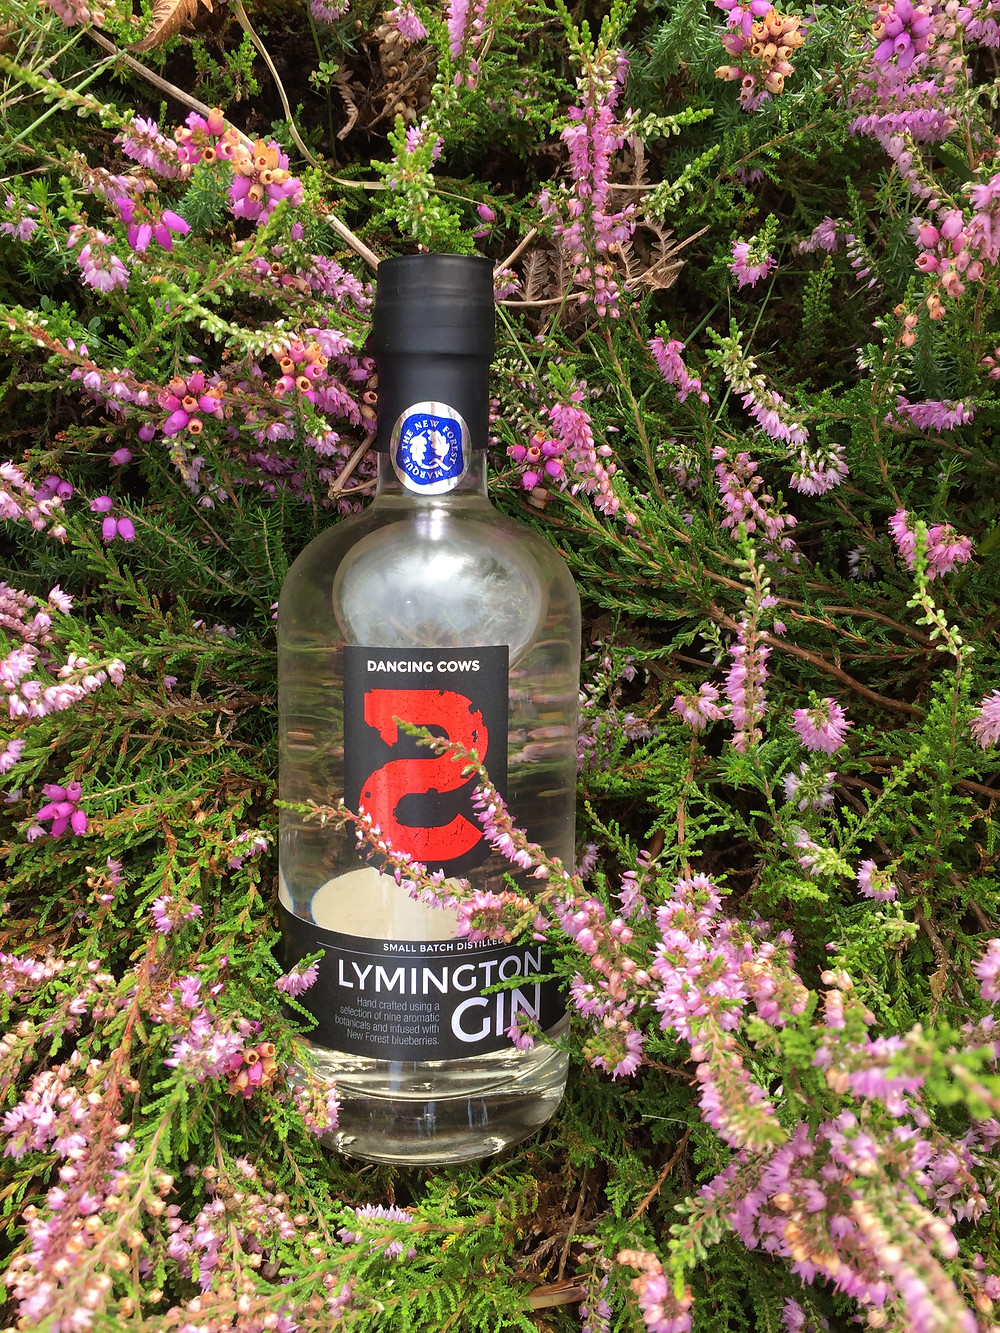 Dancing Cows gin in New Forest heather